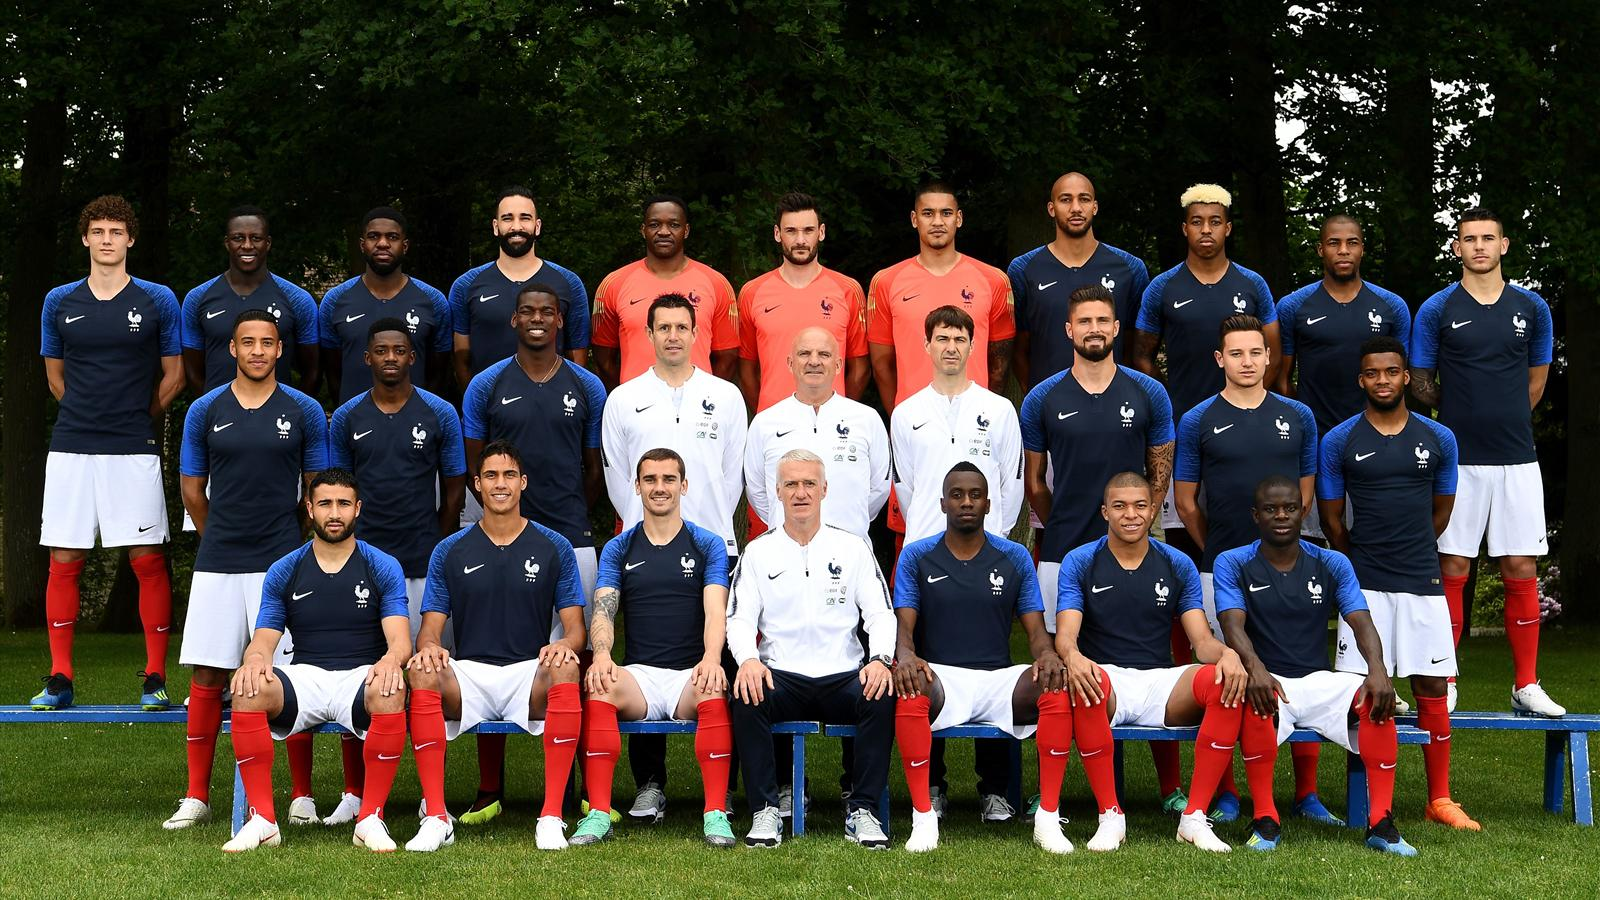 Video coupe du monde les 23 joueurs fran ais champions du monde 2018 coupe du monde - France football gratuit ...